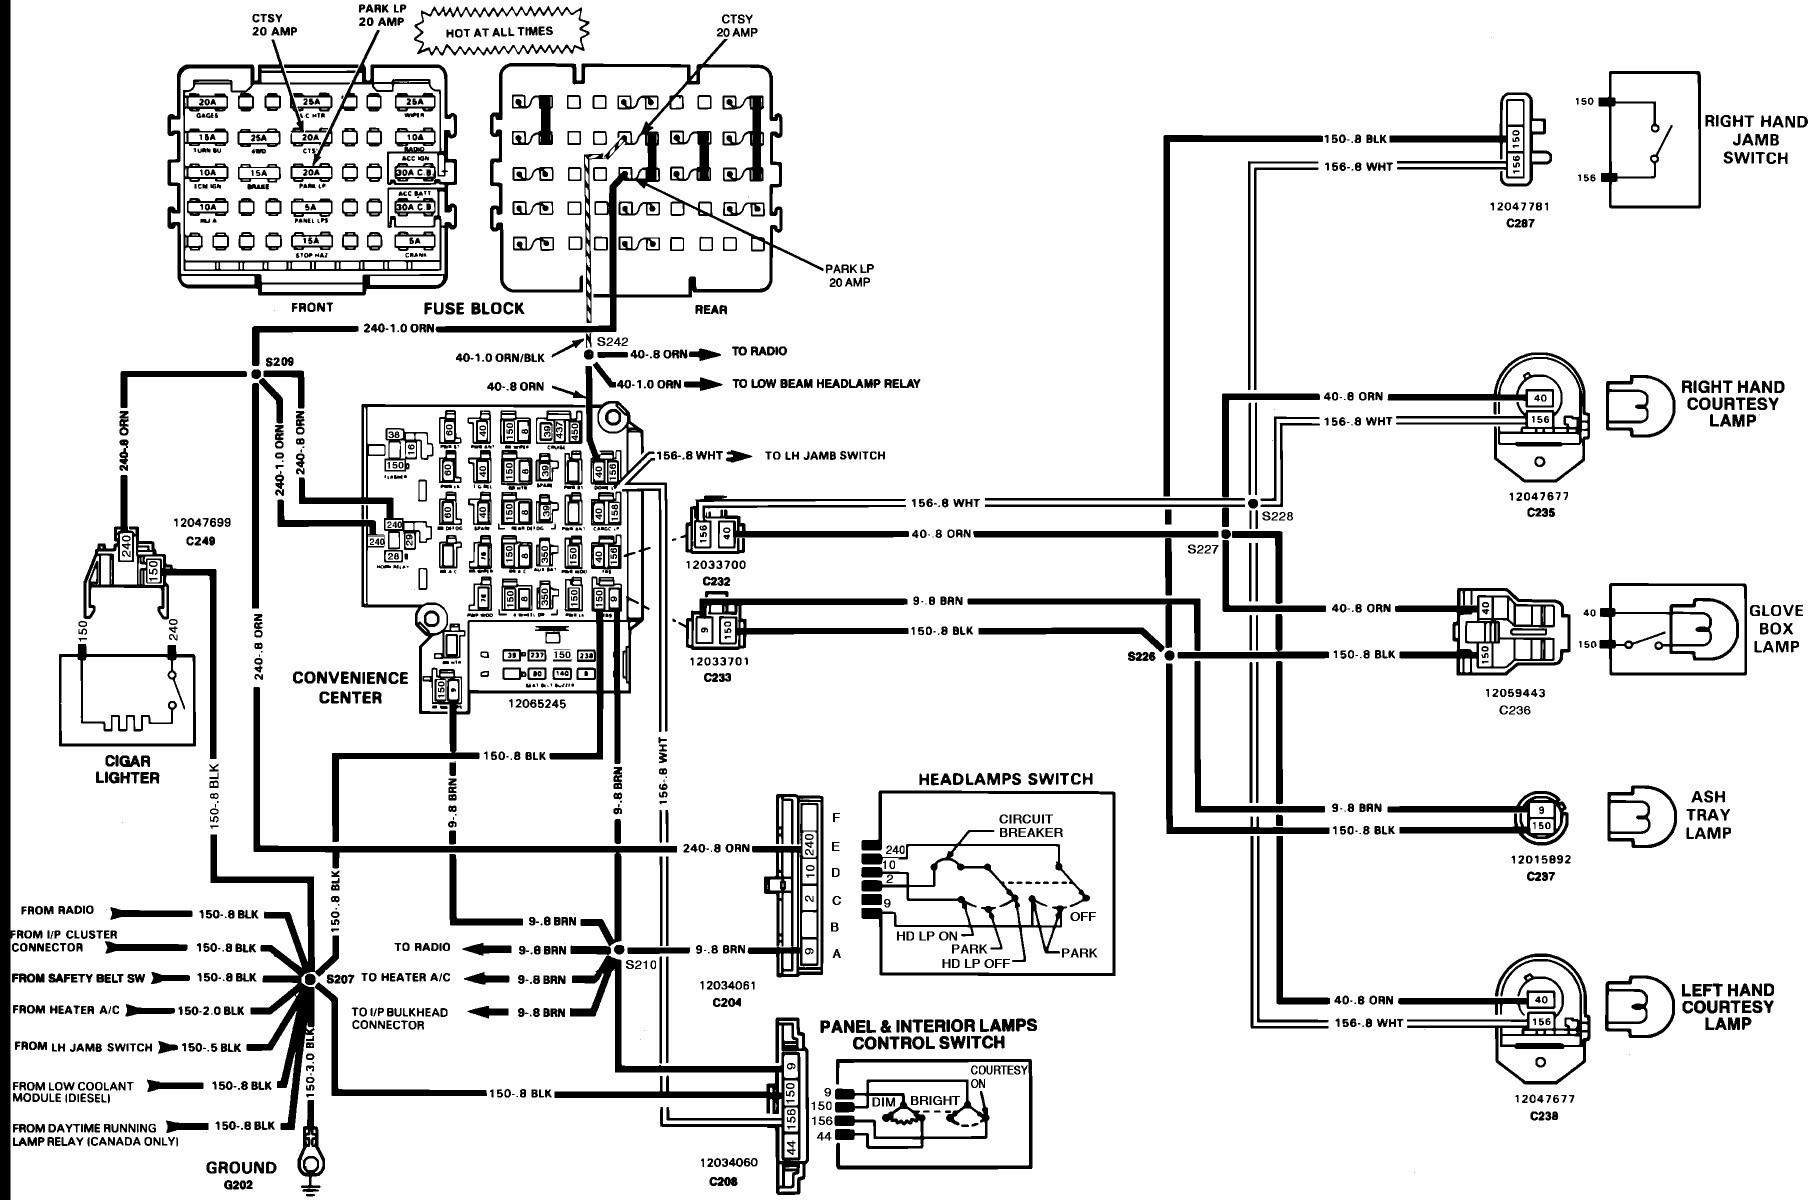 Wiring diagram ge concord circuit diagram template  concord 4 wiring diagram britishbusinessguide co uk \\u2022wiring diagram ge concord wiring diagram rh 55